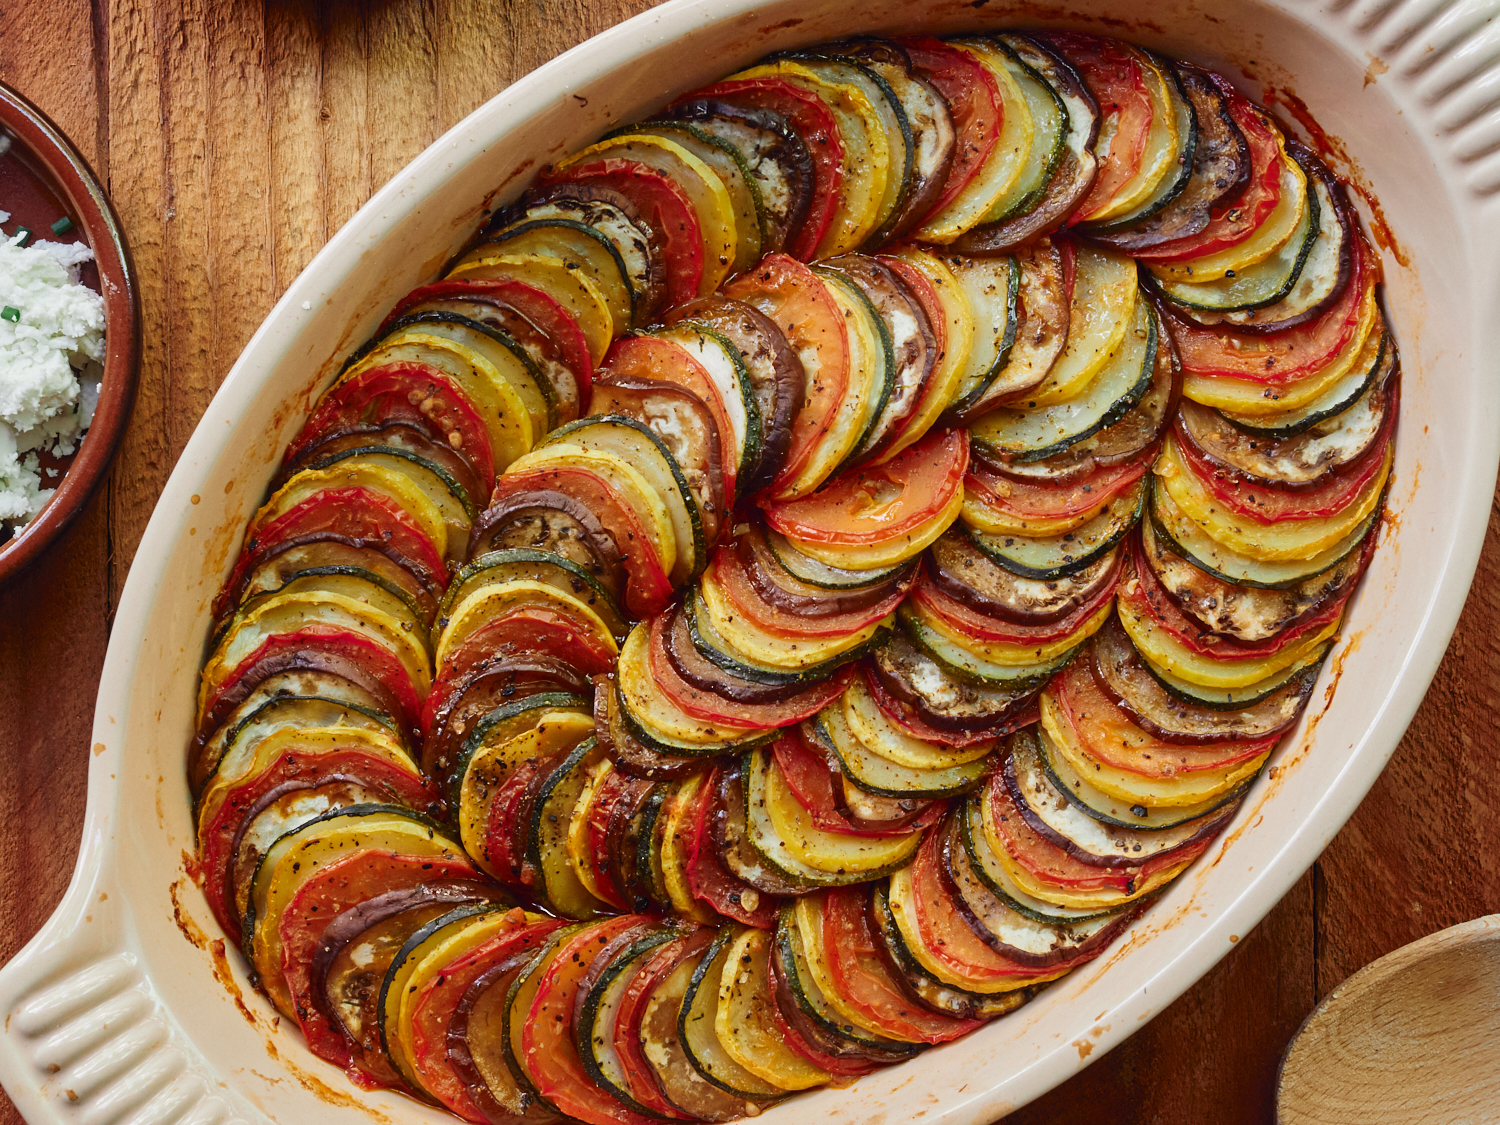 Ratatouille - Right out of the oven.